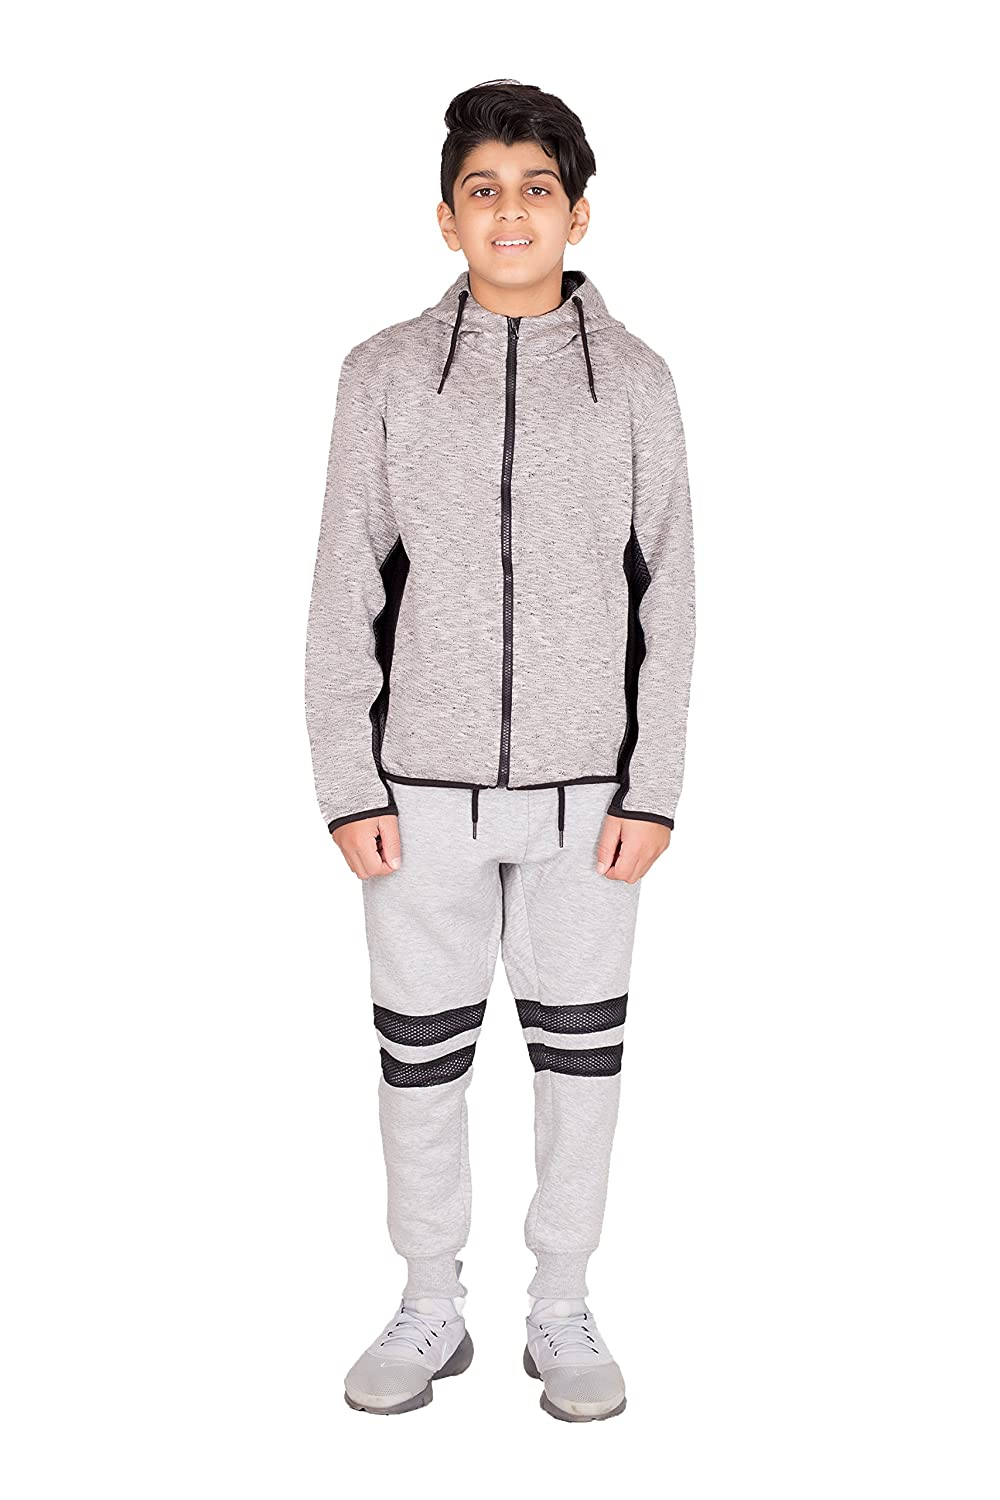 Noroze Boys Marl Side Mesh Tracksuit Kids Hoodie & Bottoms Set 7-8 Years) A1250-12